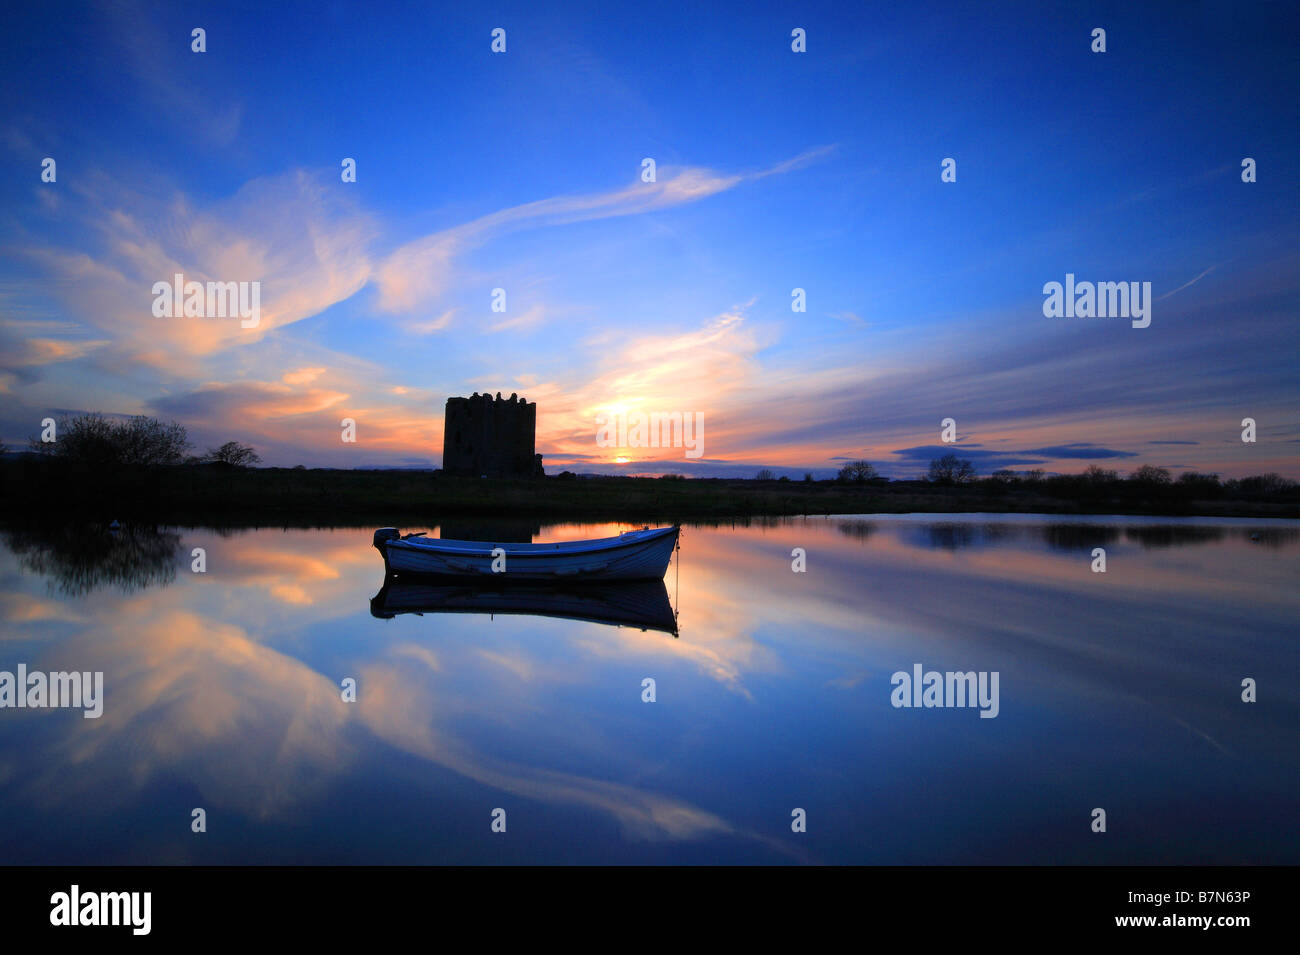 Threave Castle at dusk overlooking the River Dee, Dumfries and Galloway, Scotland - Stock Image